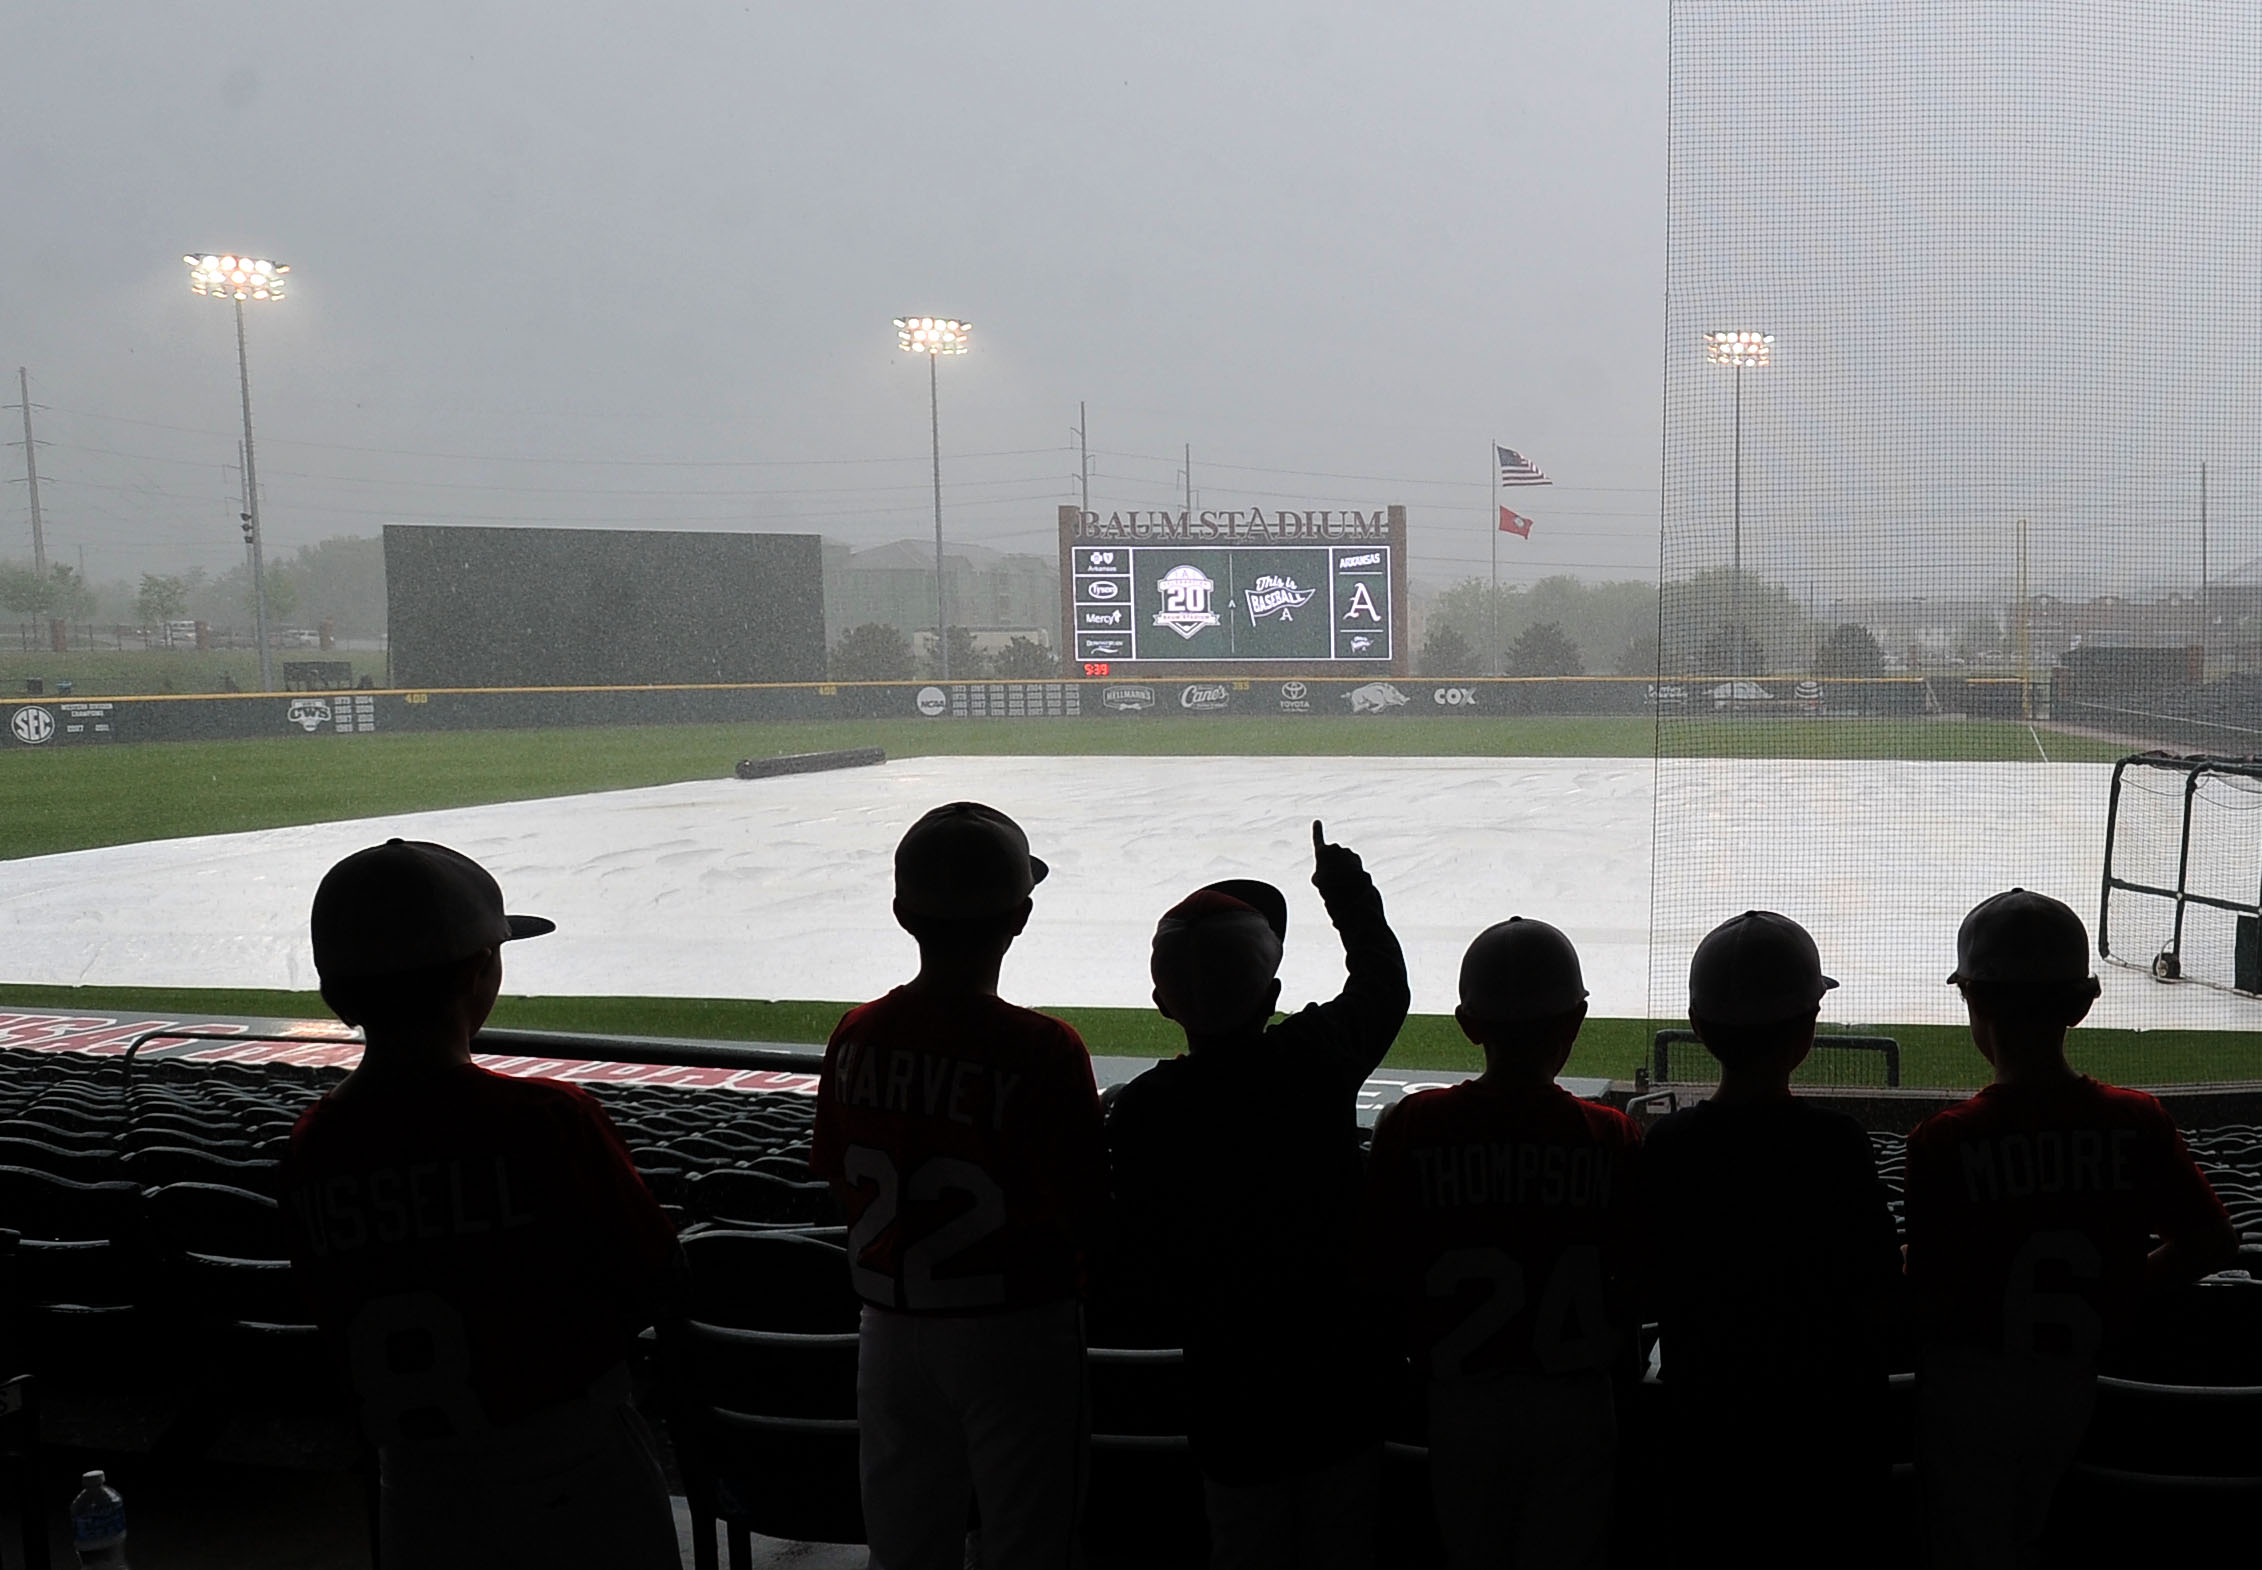 Start time delayed for Hogs, Aggies